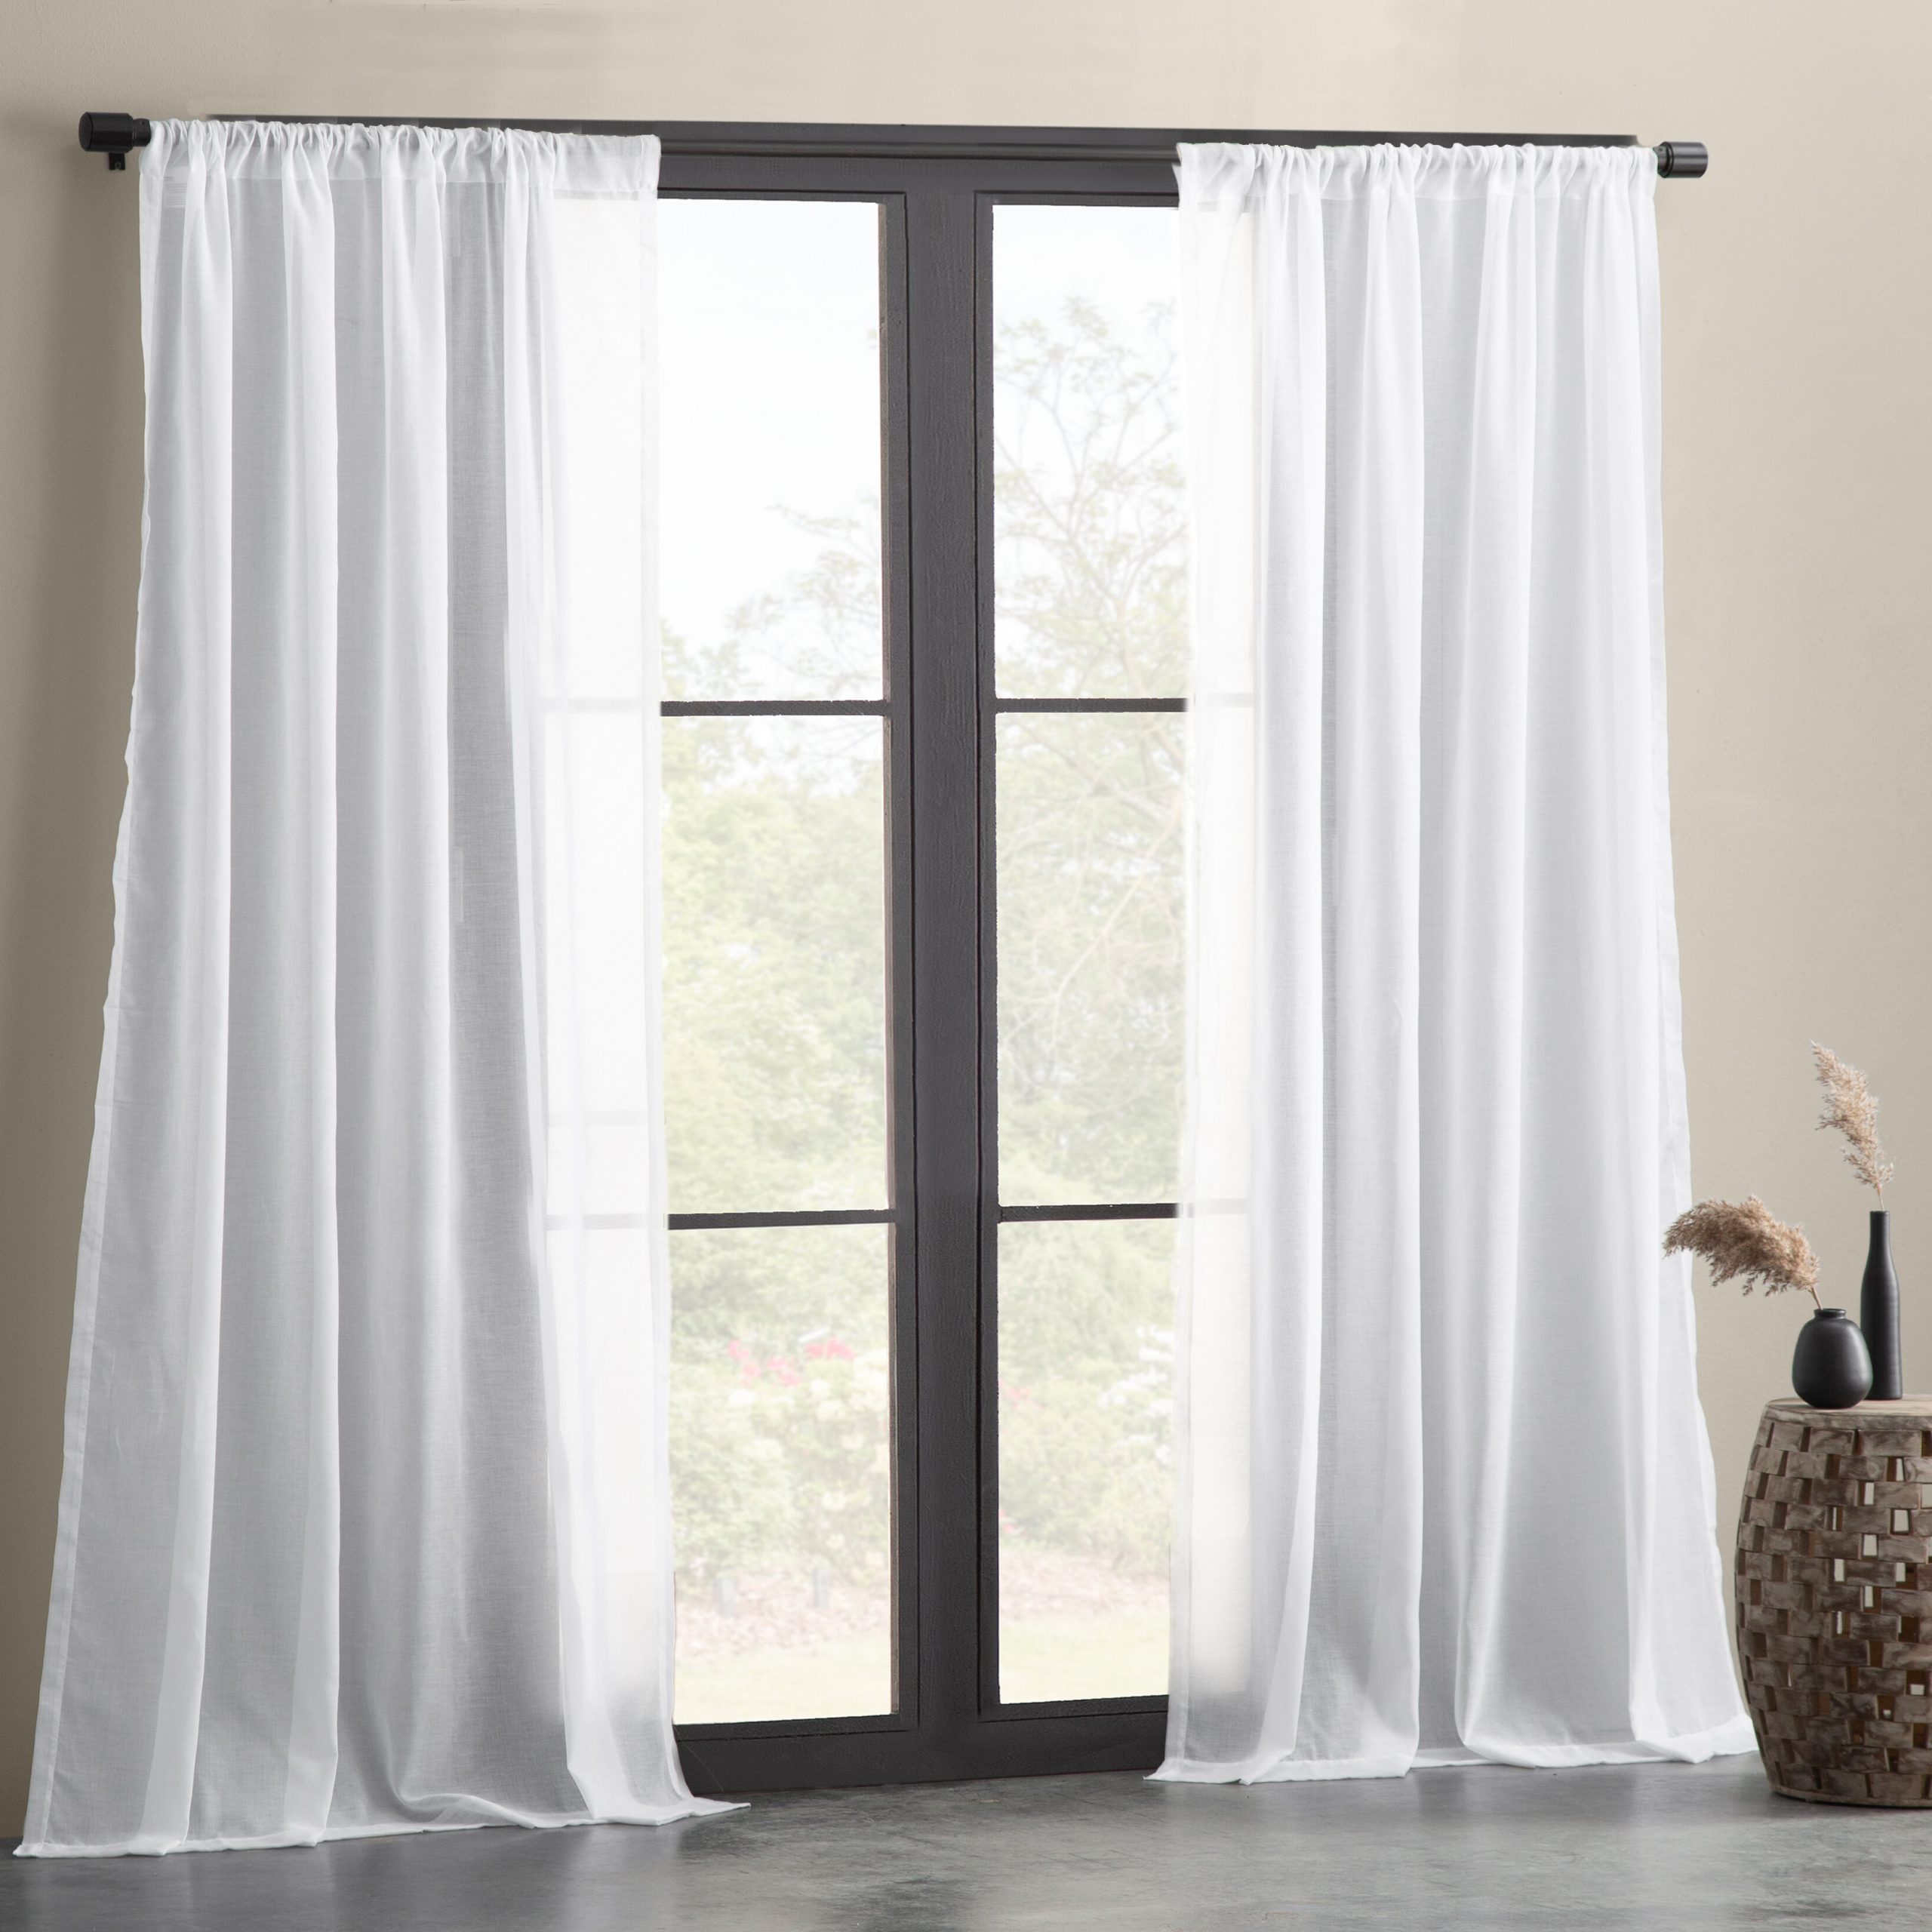 Preferred Solid Cotton Curtain Panels Pertaining To Nolan Cotton Blend Textured Weave Solid Sheer Rod Pocket Single Curtain Panel (View 8 of 20)